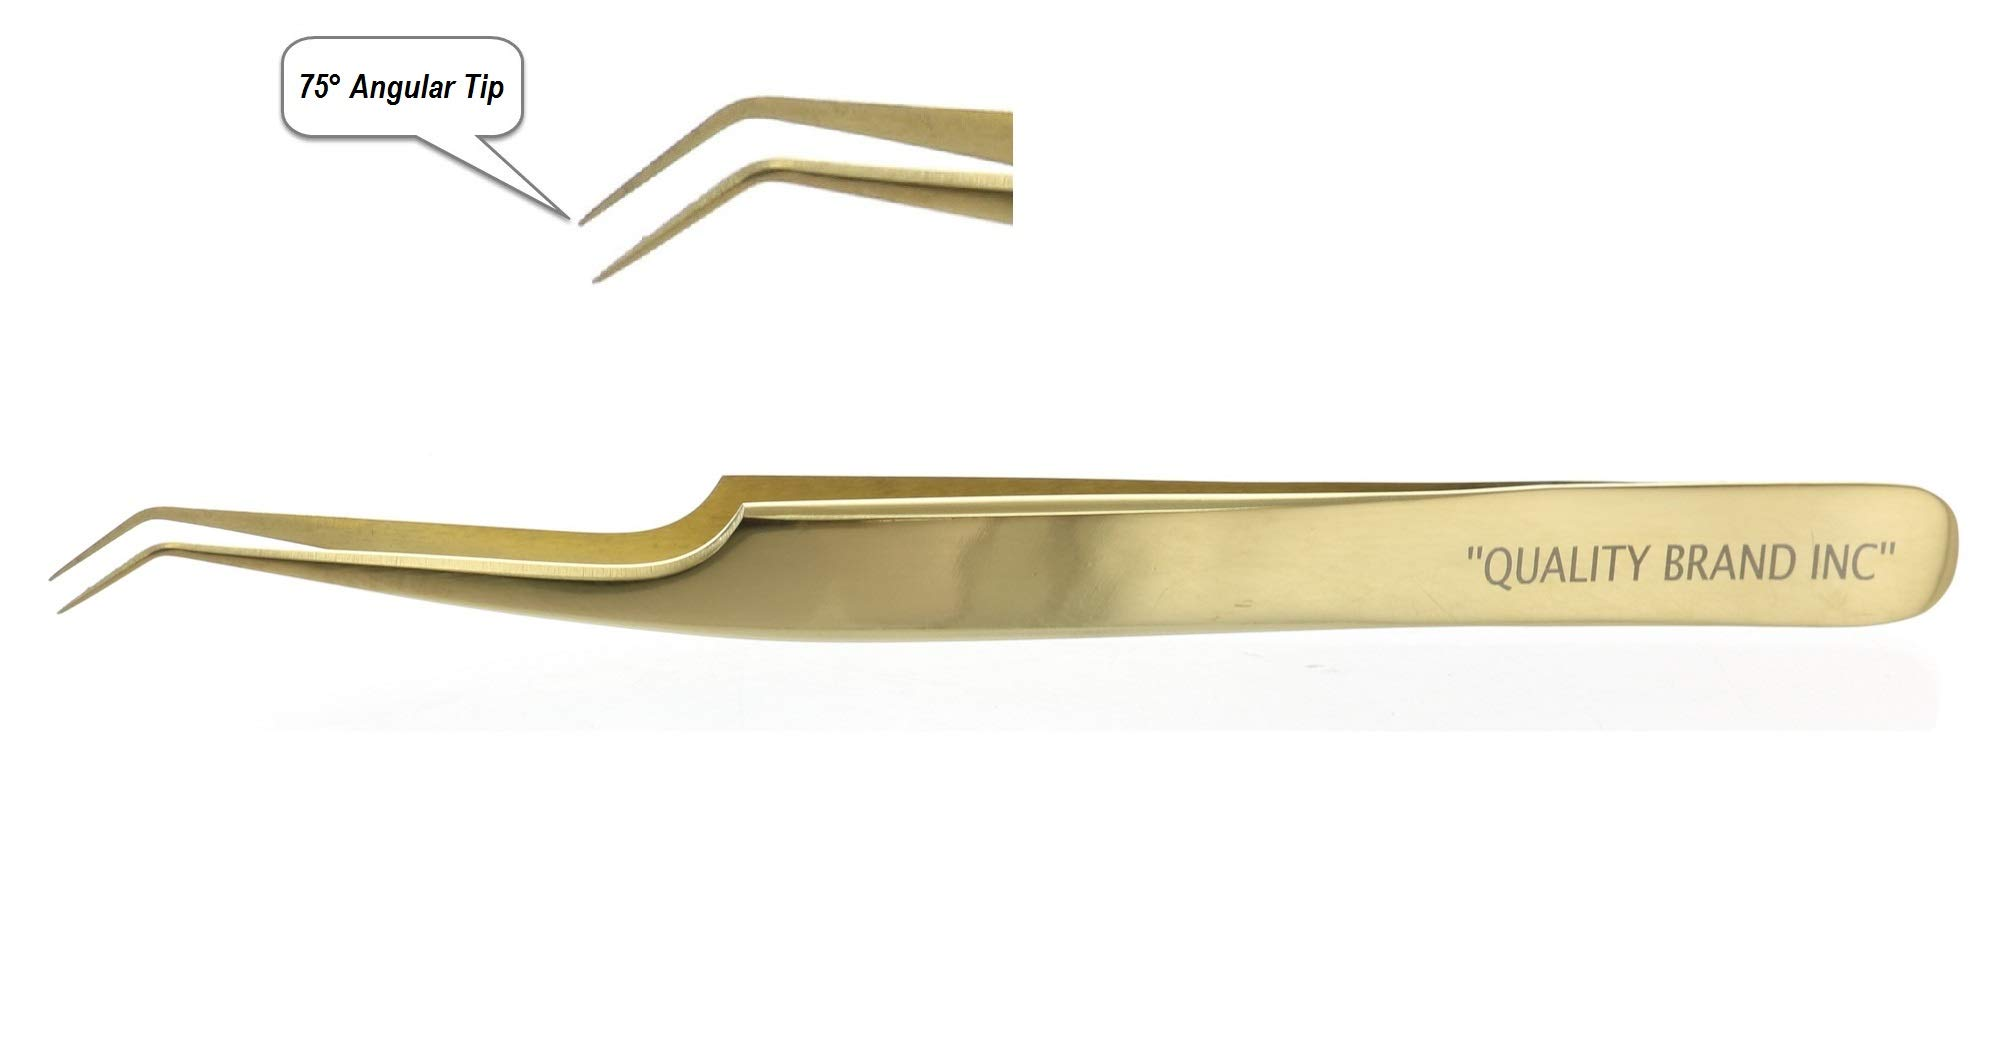 Precision Eyelash Extension Tweezers, Gold Russian 75° Angular Tip, Stainless Steel for Professional Use by Quality Brand Inc